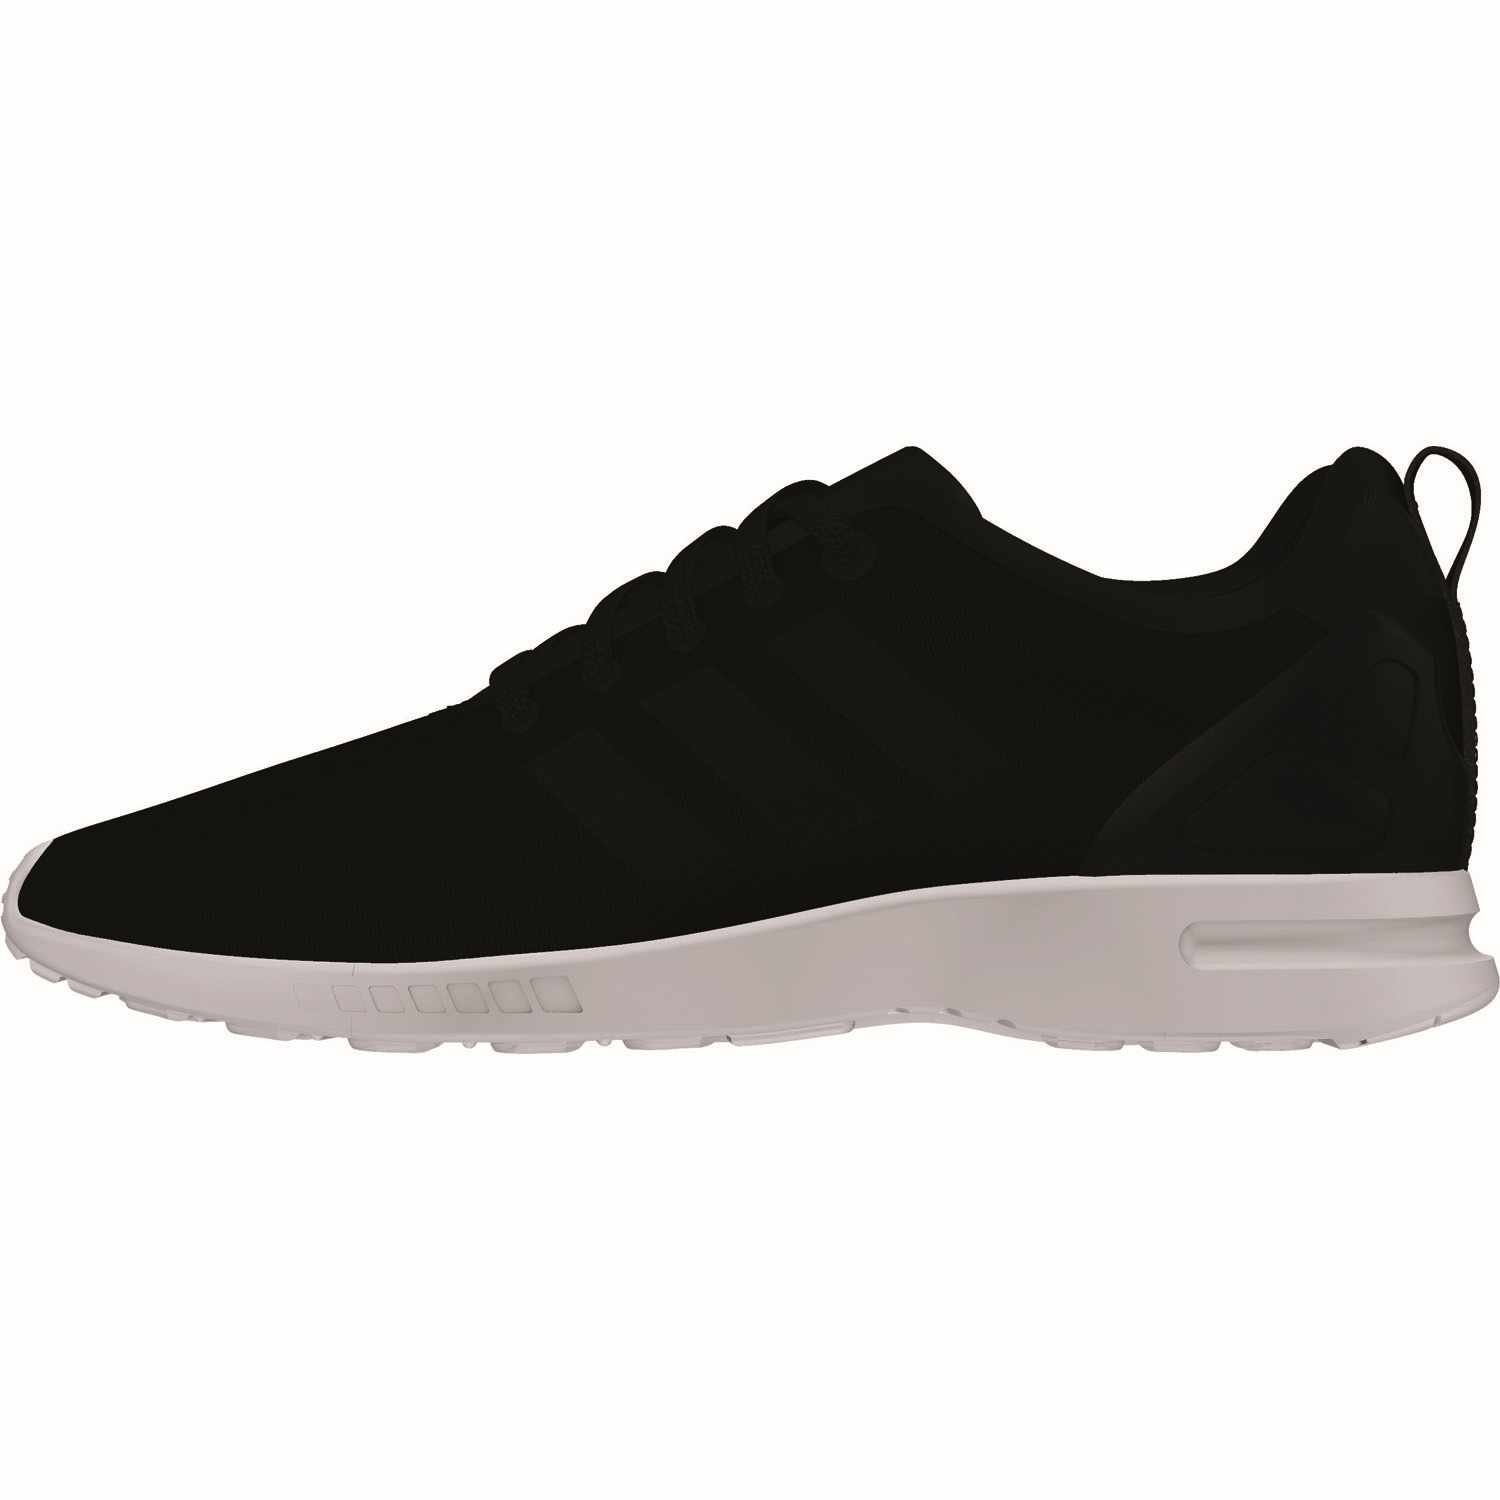 official photos 11960 b2a33 Adidas Originals ZX Flux ADV Smooth Women's Trainers S78964 ...